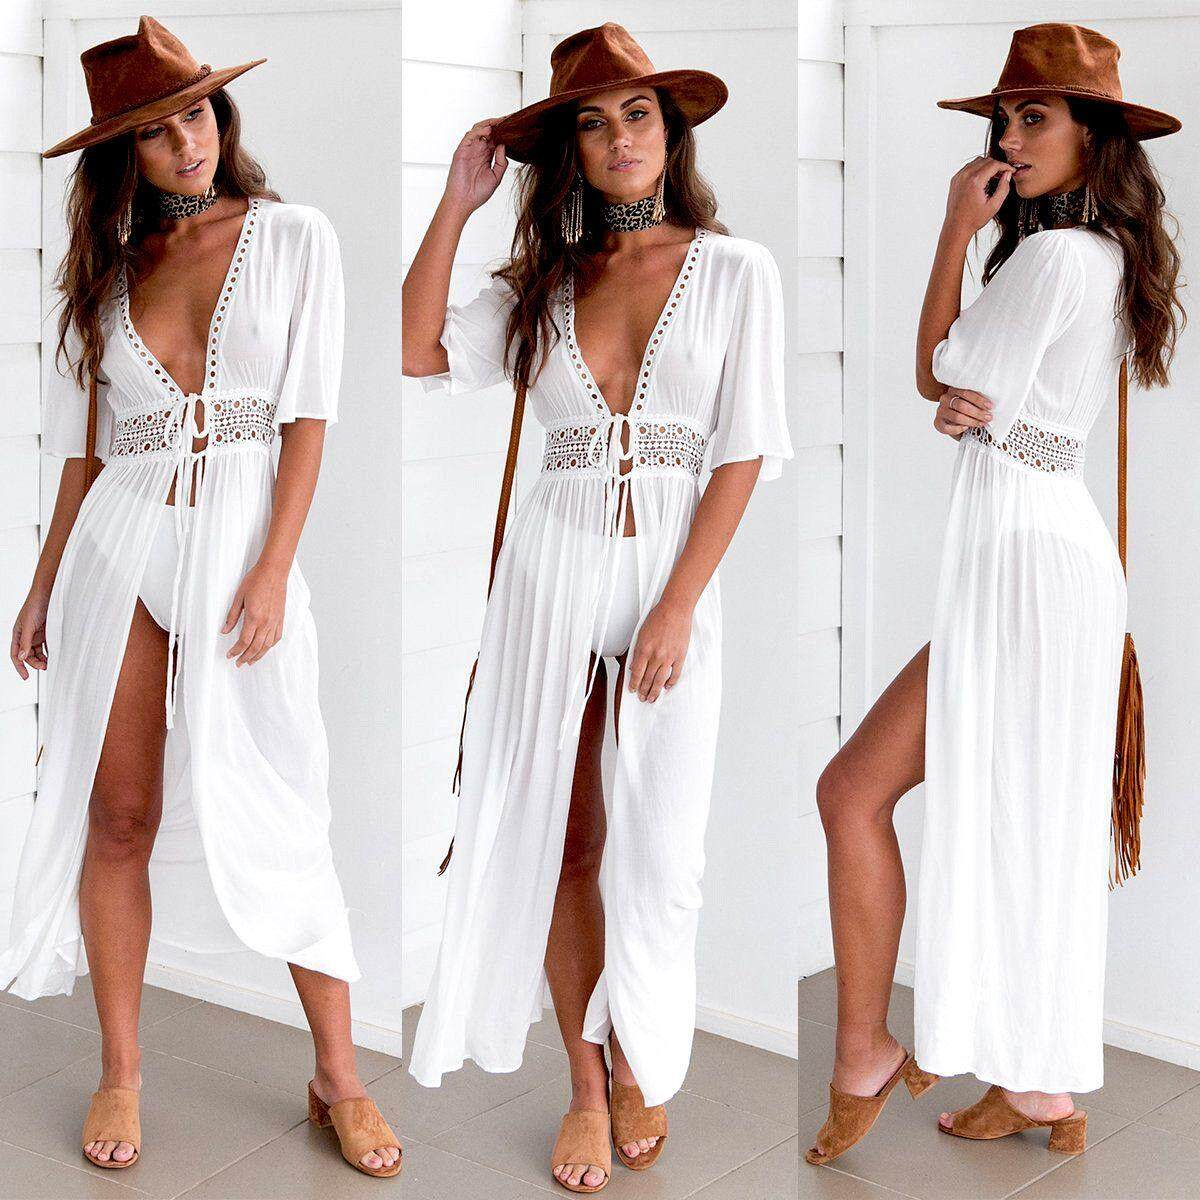 7c08f4ddef Women Beach Bikini Cover up Long Kaftan dress Summer Boho Maxi Dress  Swimwear